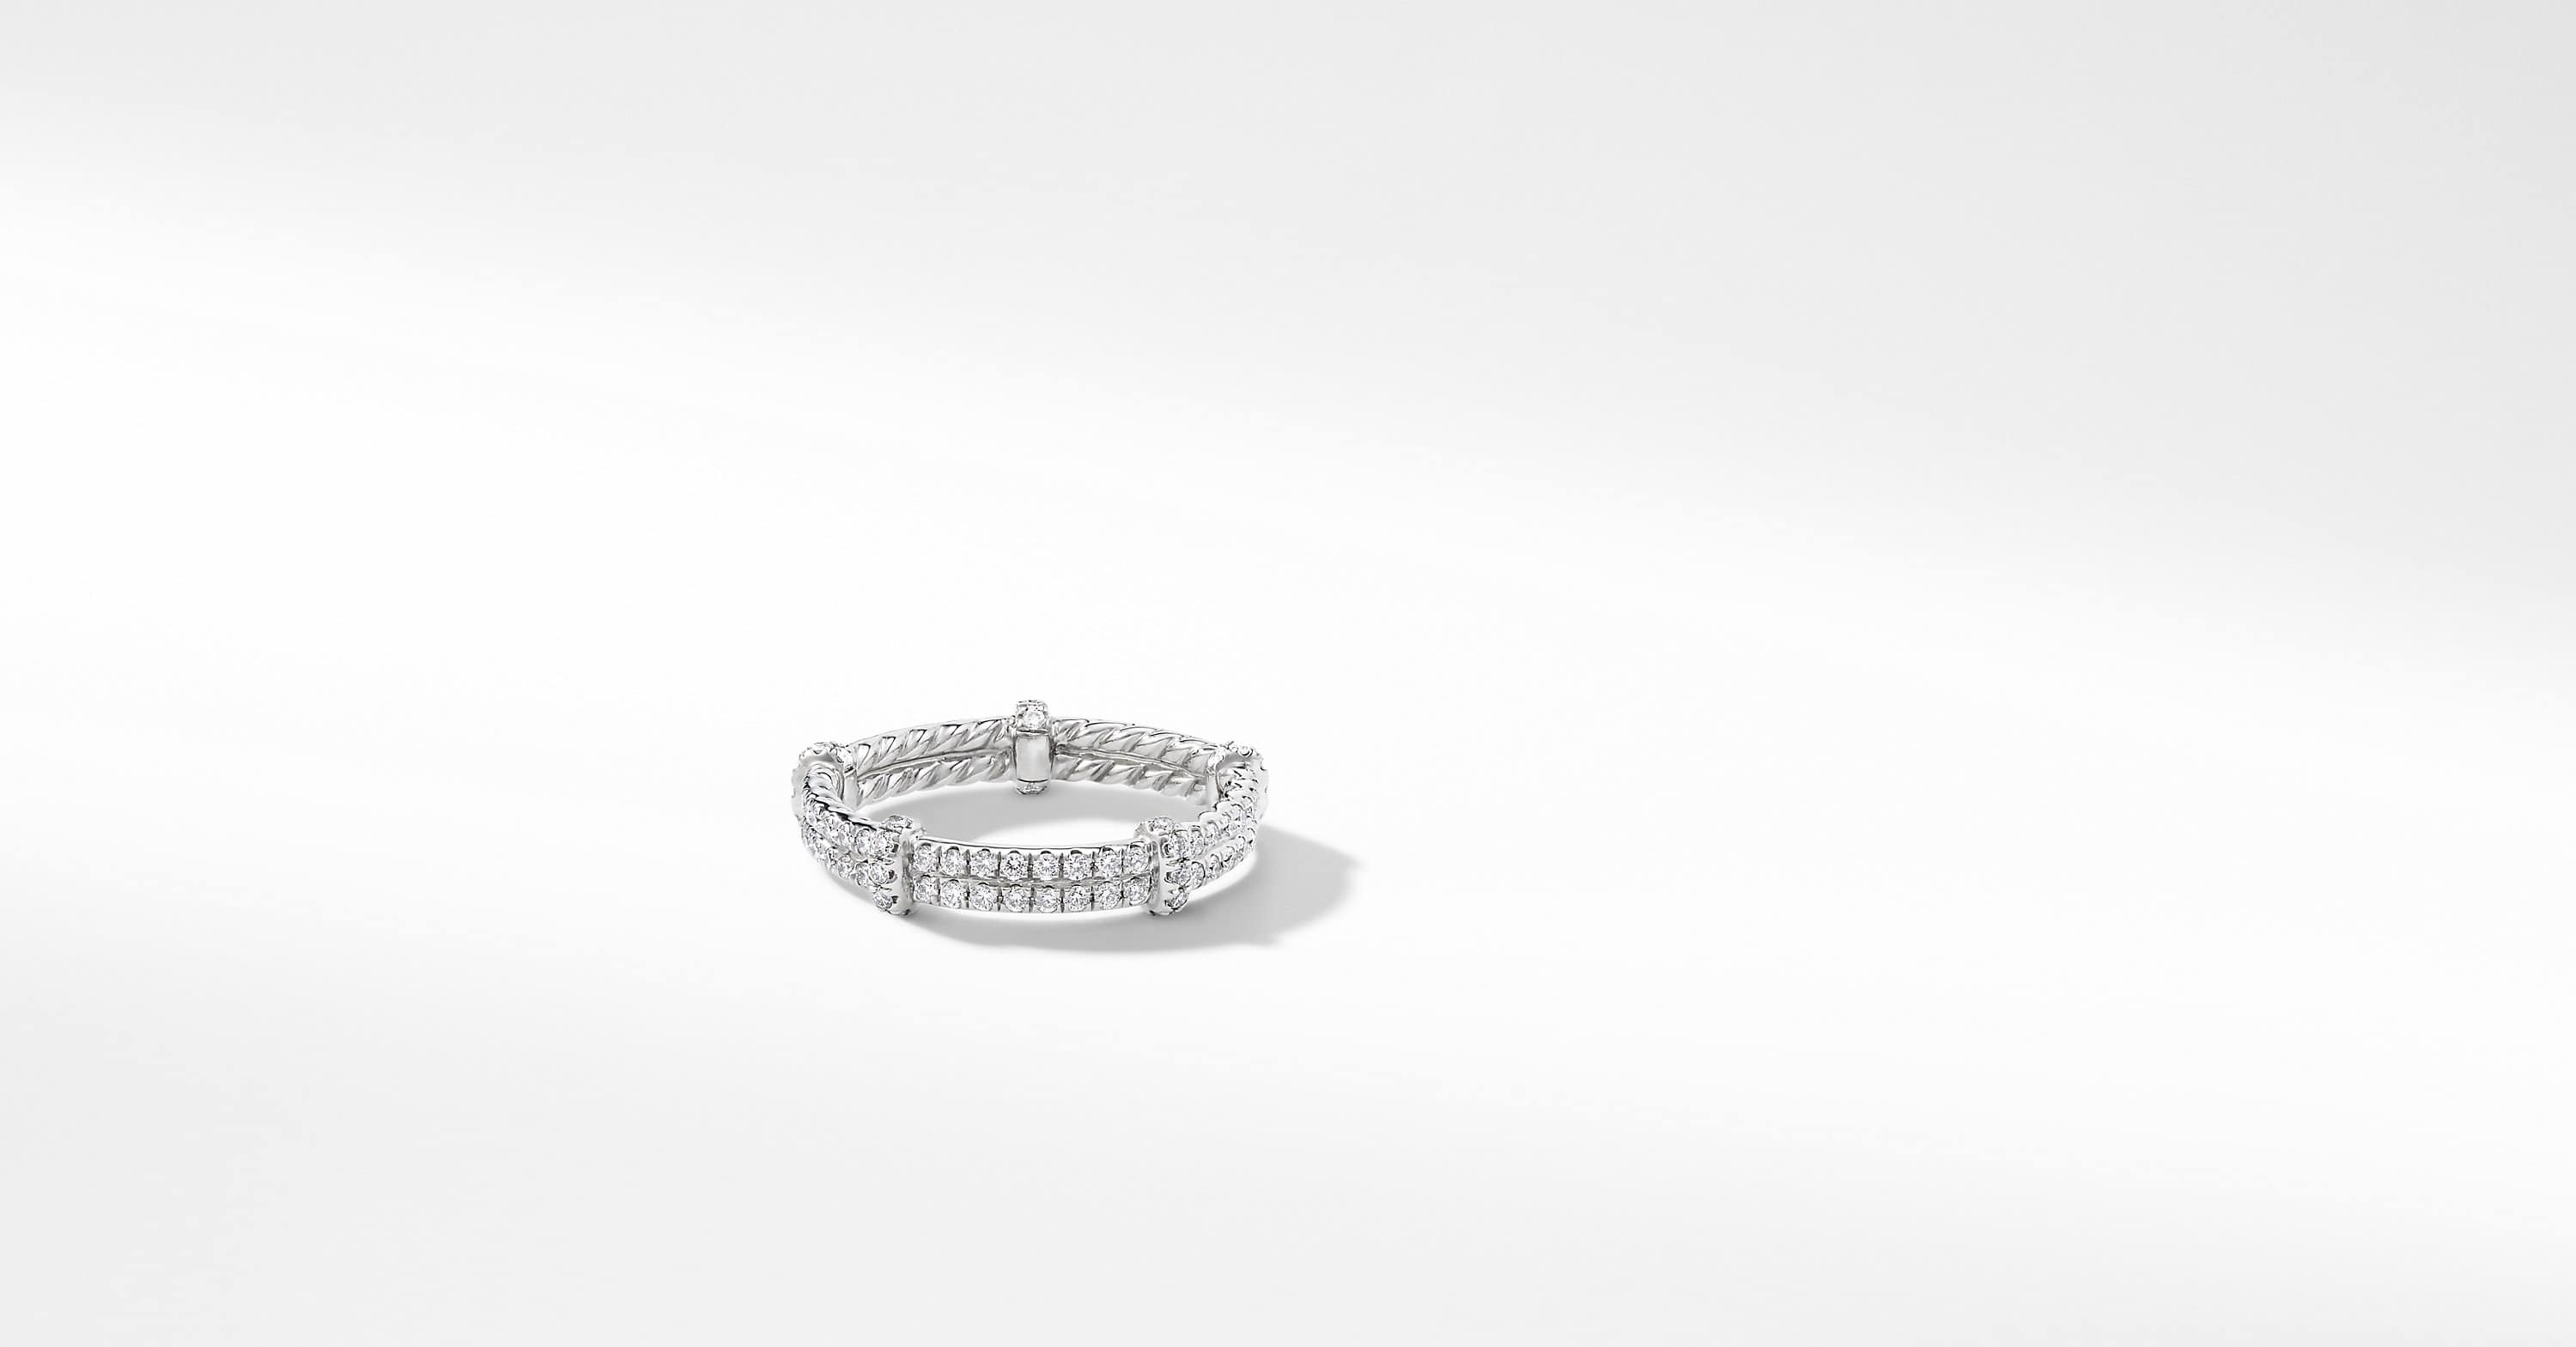 DY Astor Pave Eternity Wrap Band with Diamonds in Platinum